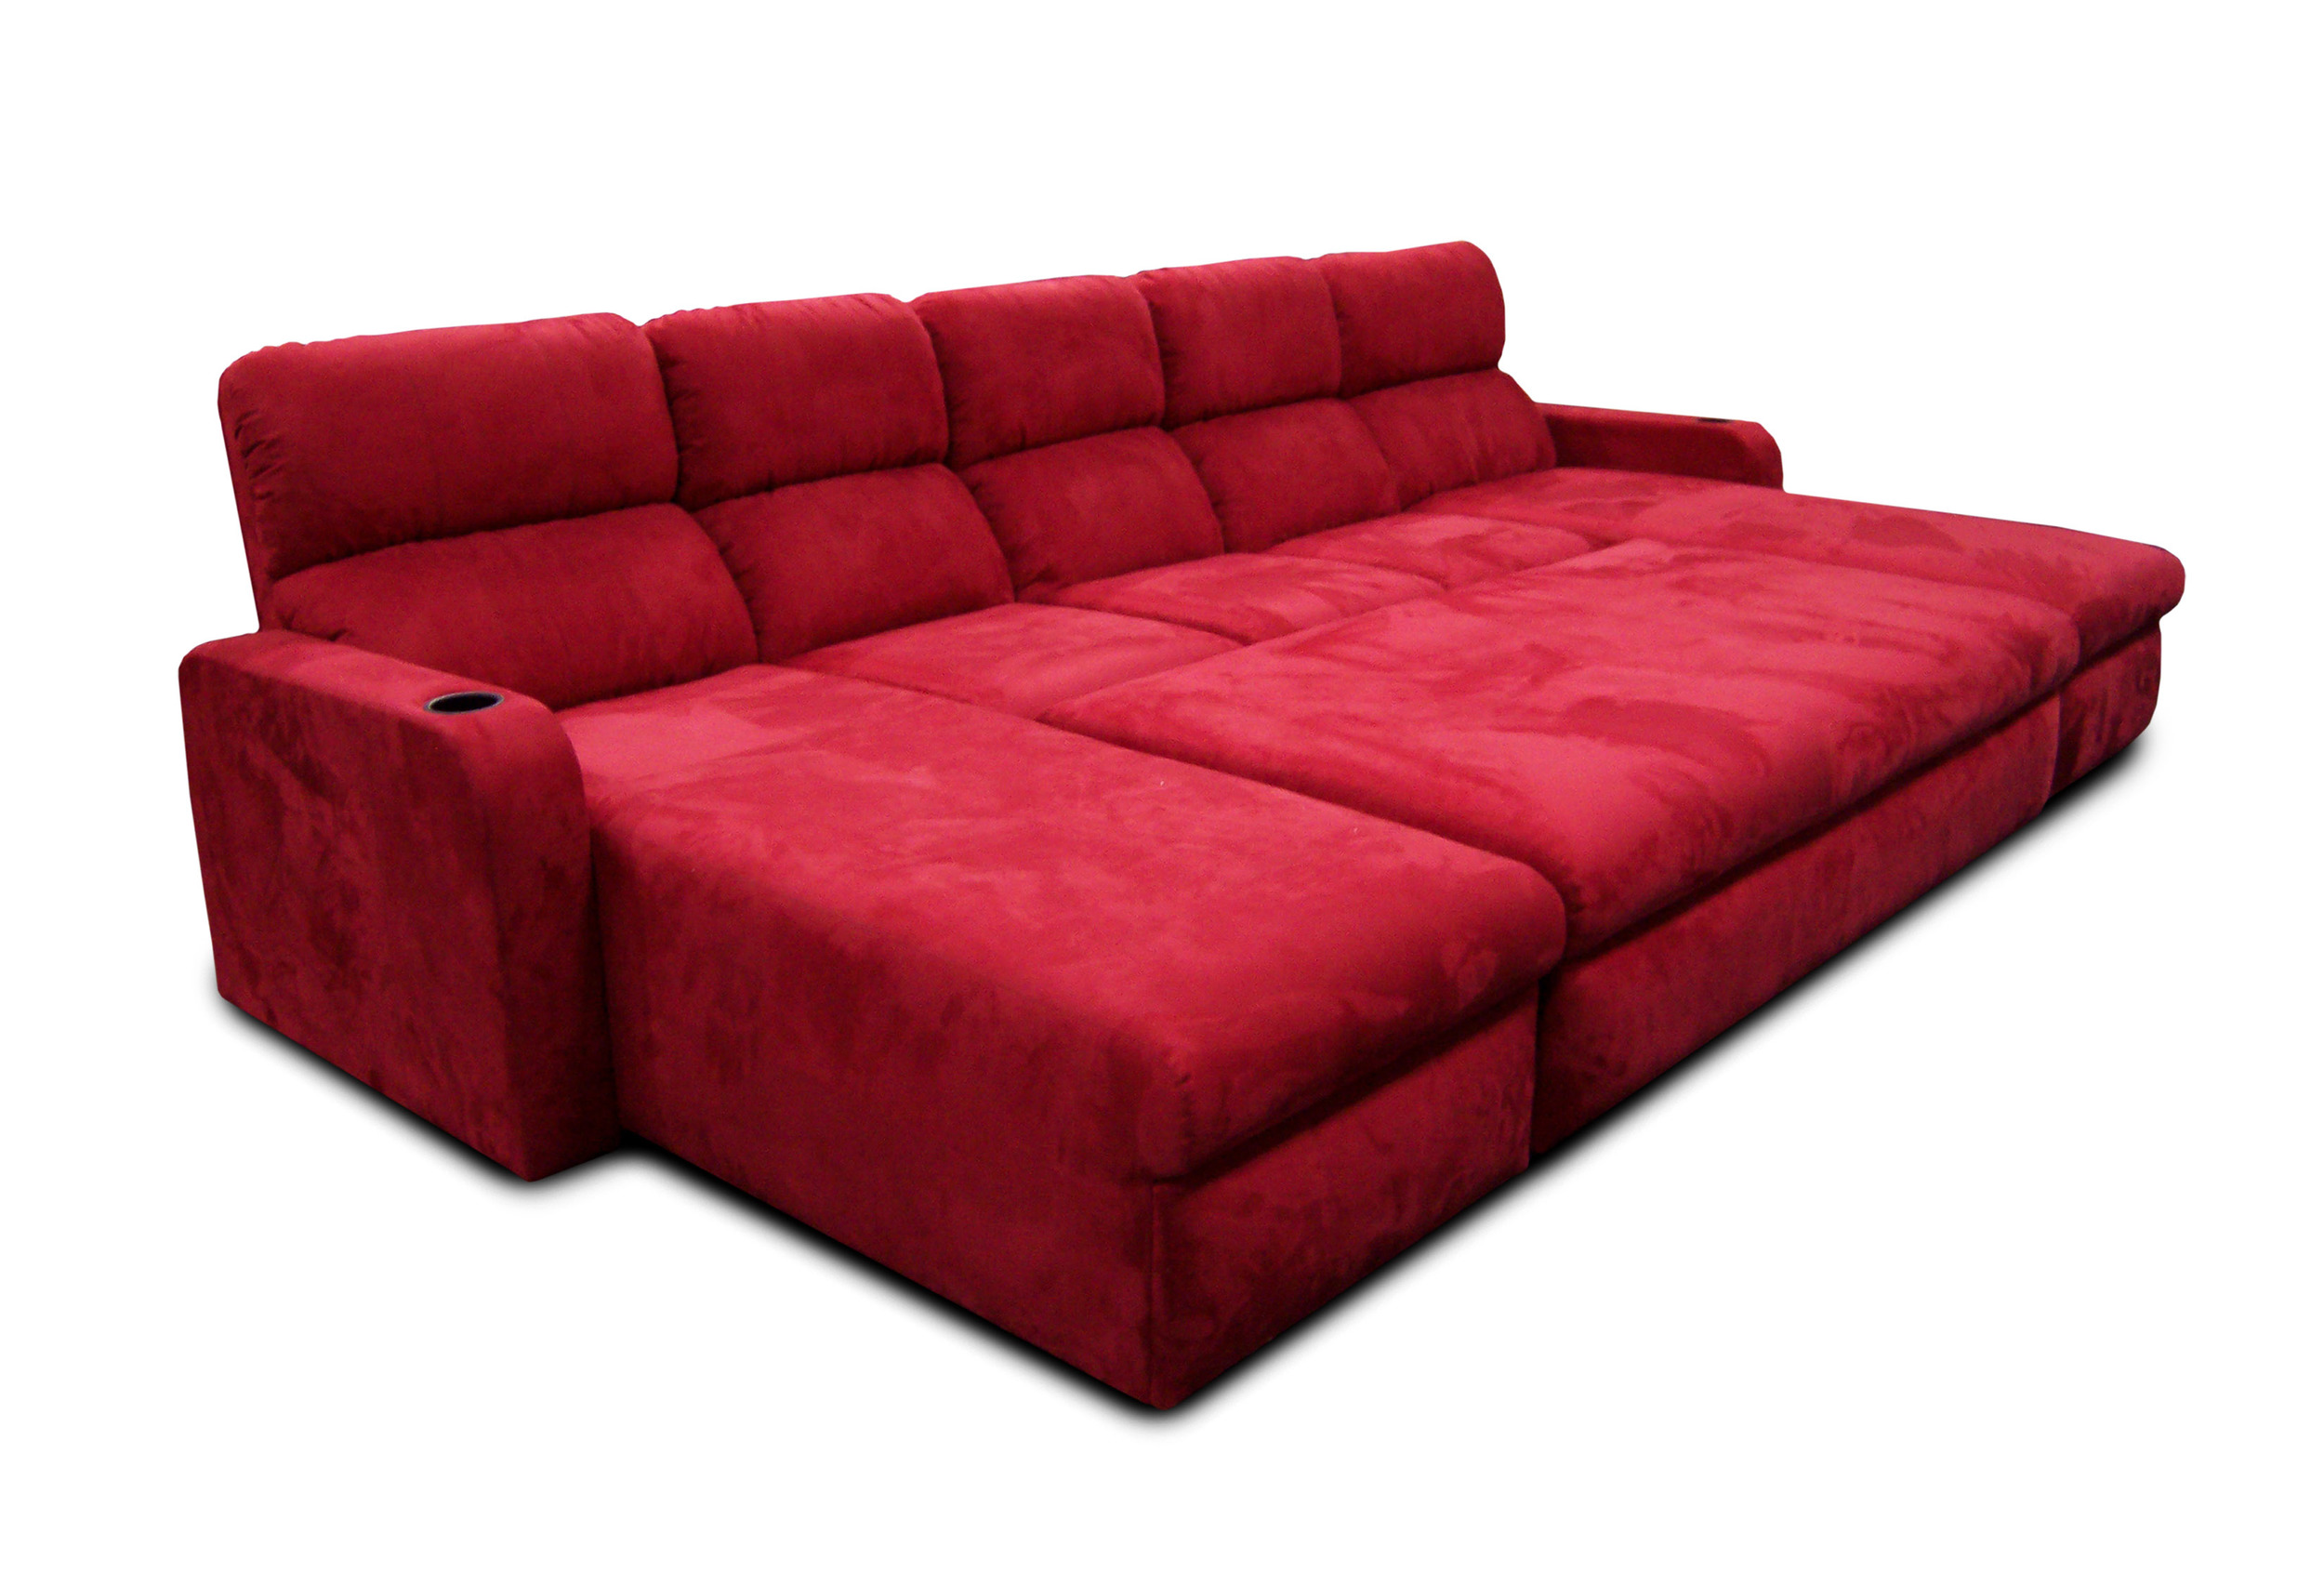 Chaise-Center Reclining Sofa-Chaise; Center Ottoman on Casters; Pillow Back